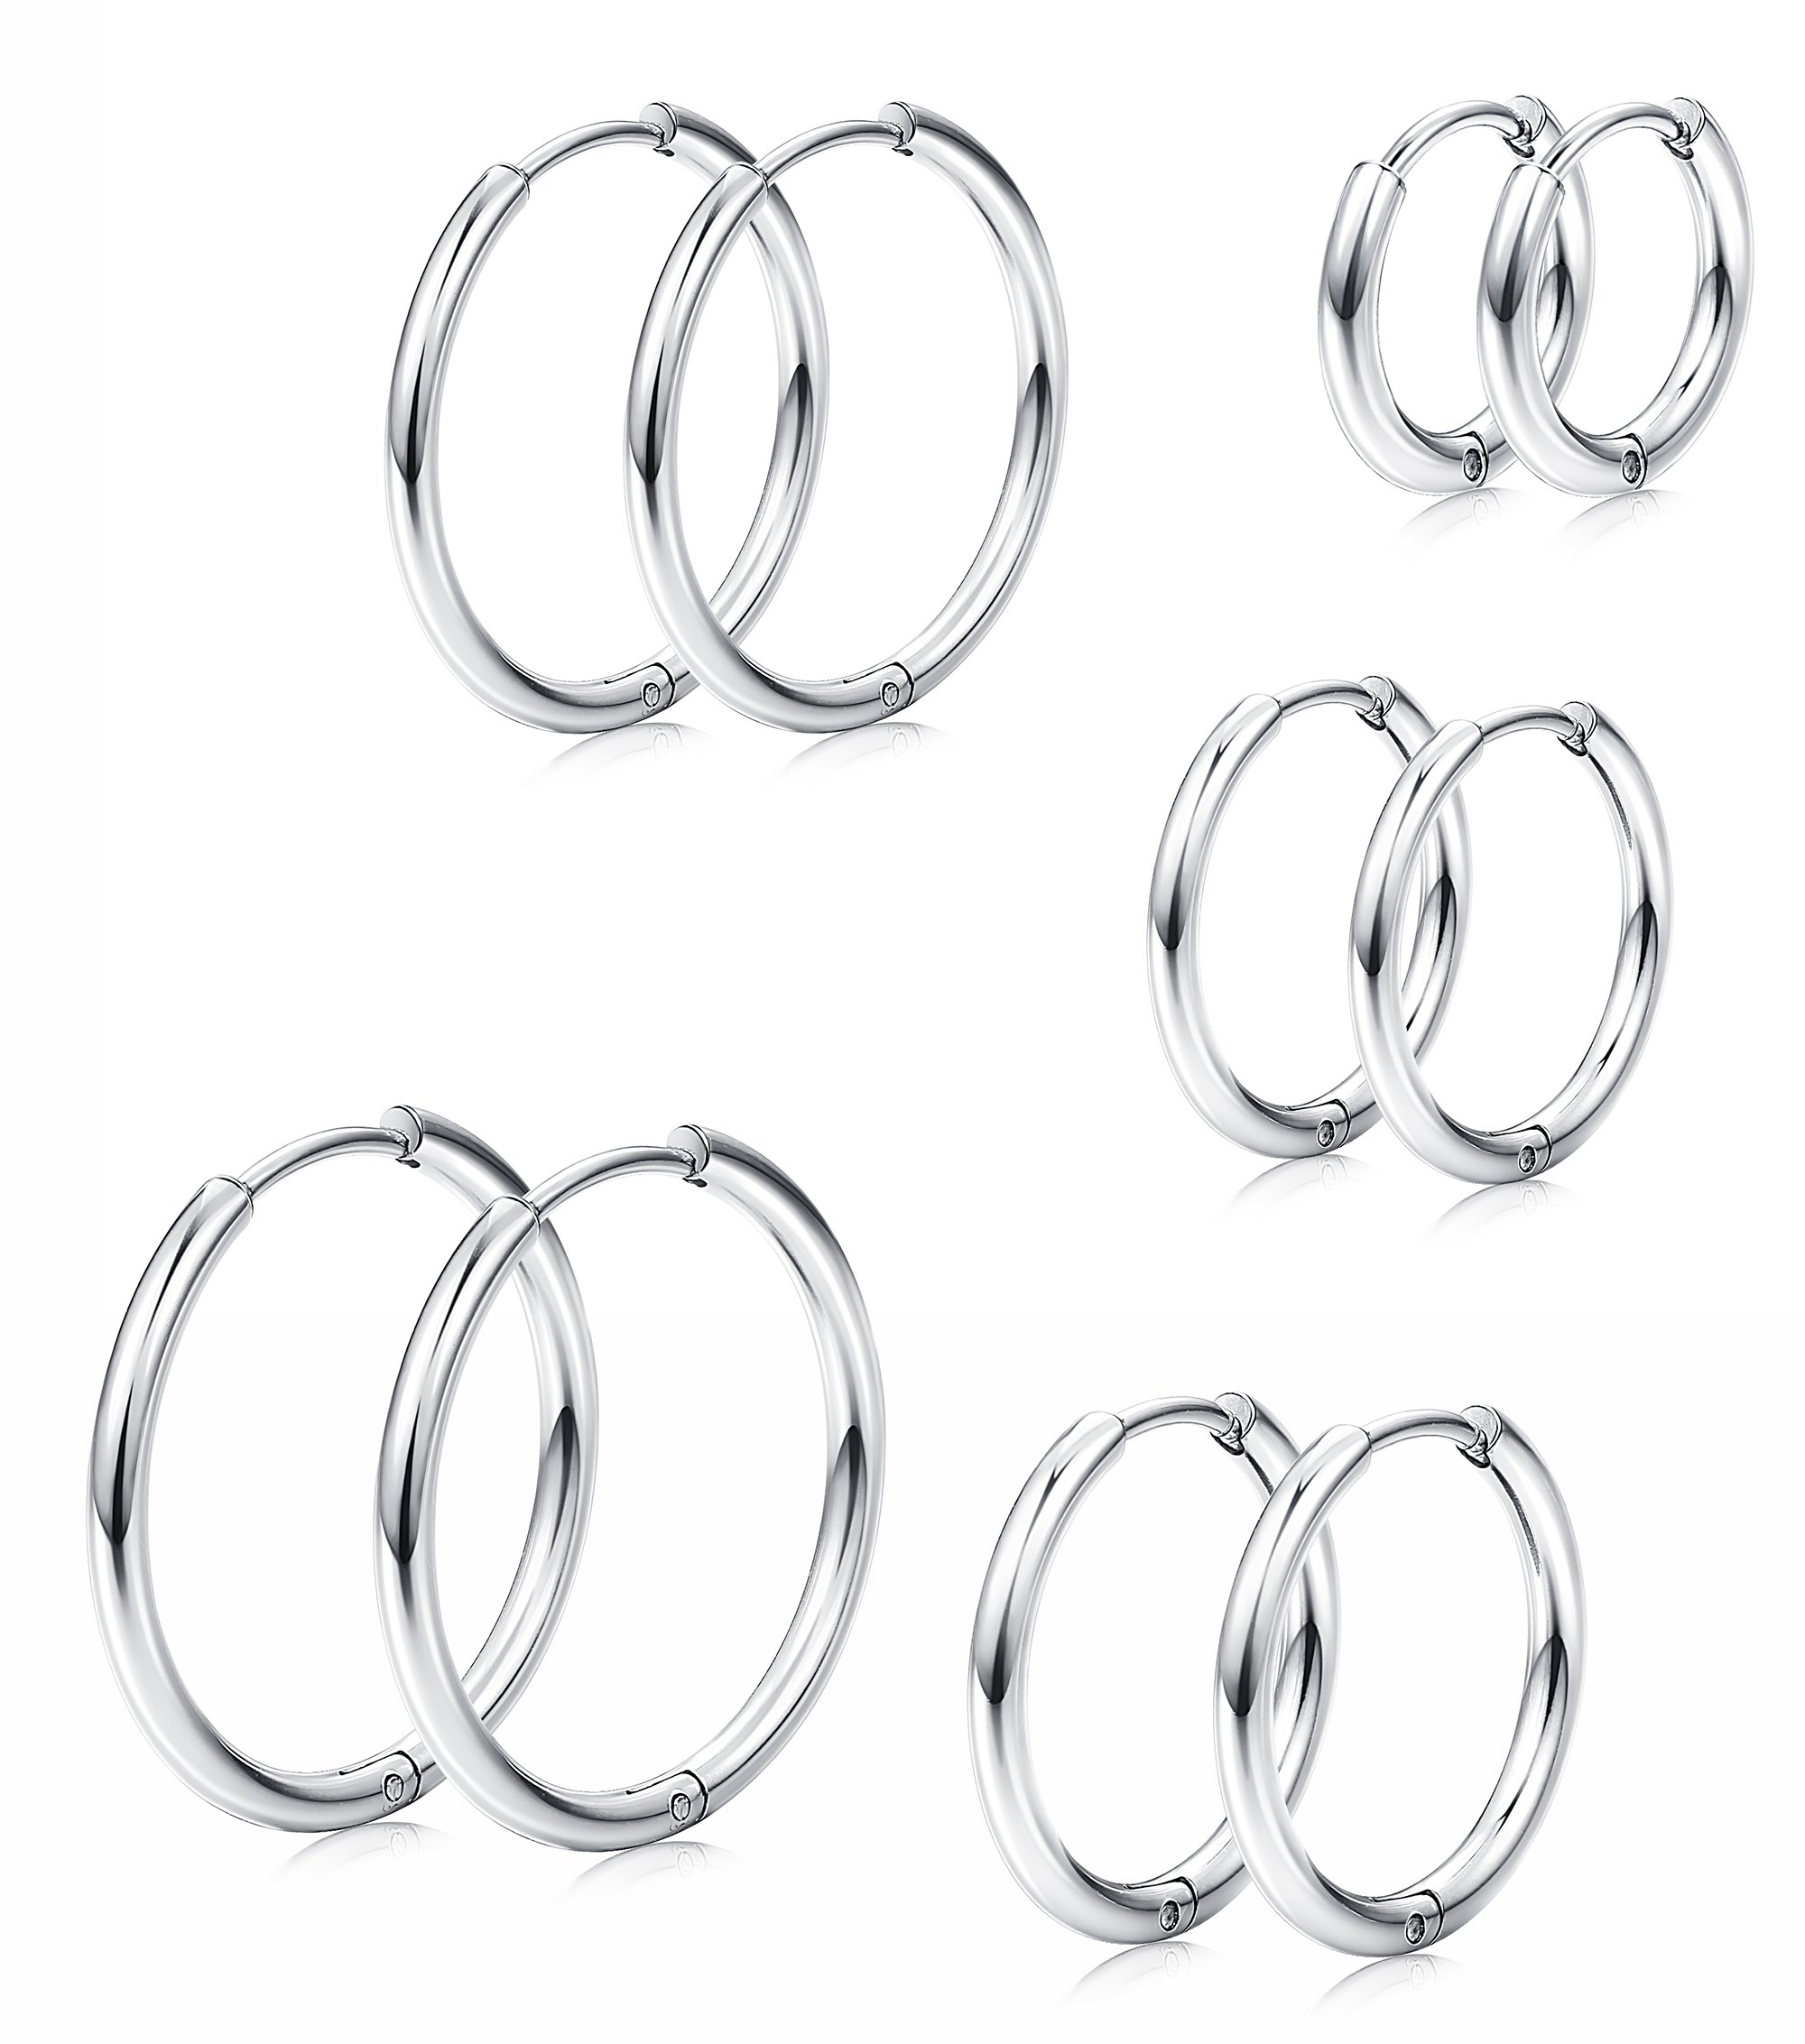 Milacolato 5 Pairs Stainless Steel Basic Small Large Endless Hoop Earrings for Mens Womens Cartilage Huggie Nose Tongue Body Ring Piercing 8-16mm Silver